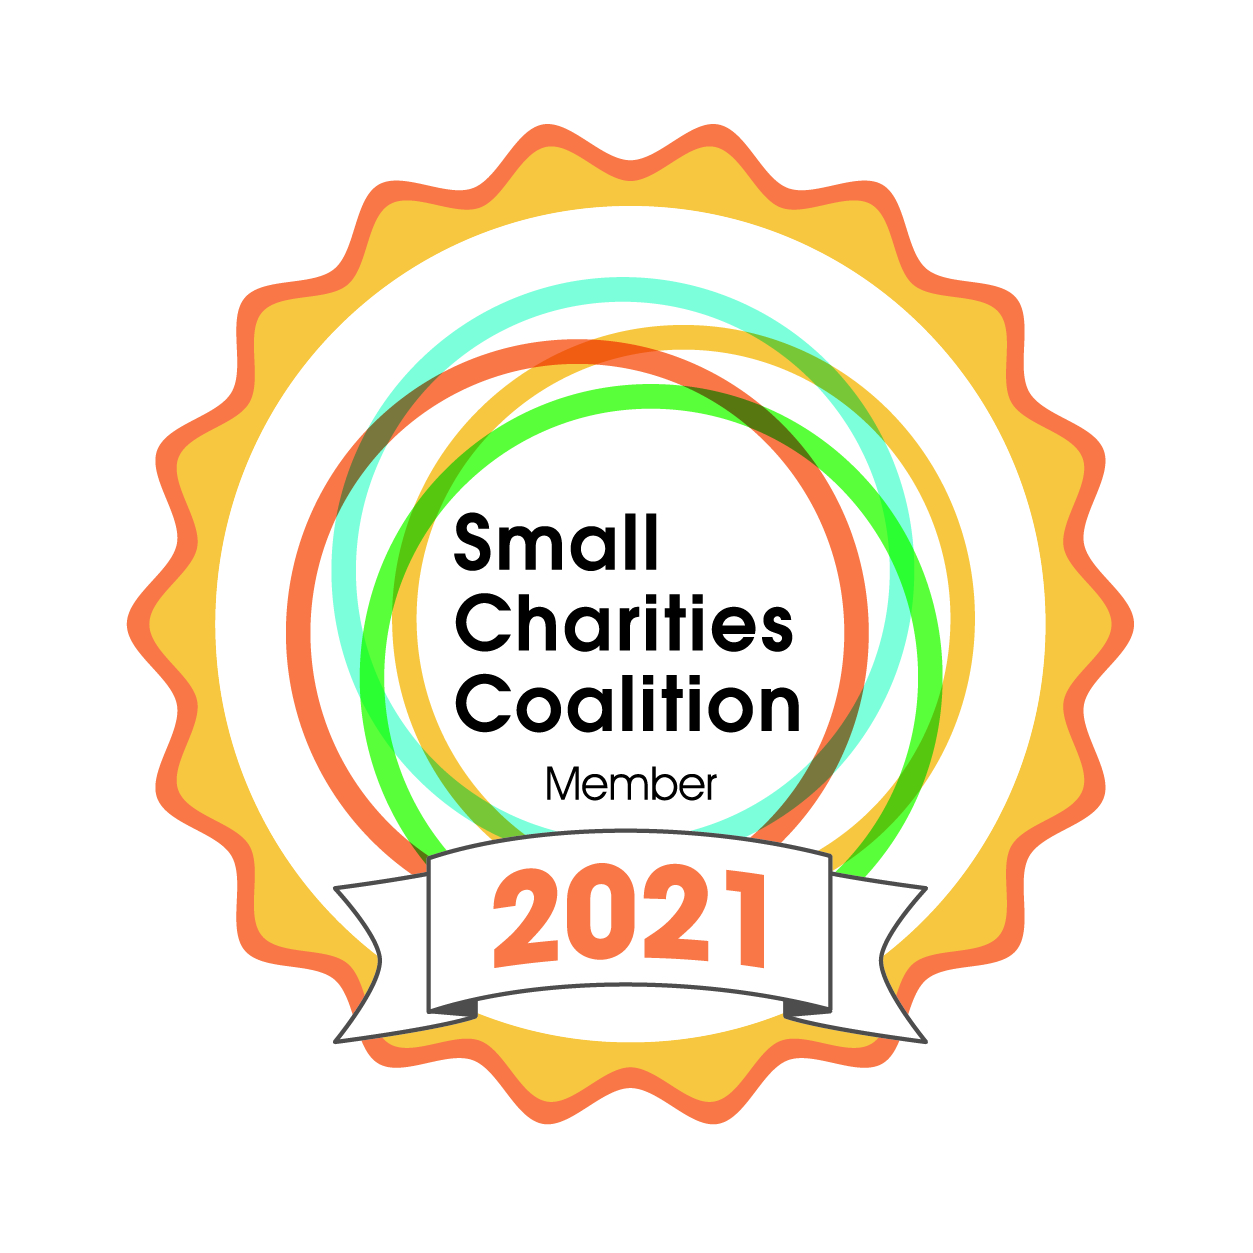 Animal Rescue Kefalonia UK – Small Charities Coalition Member 2021